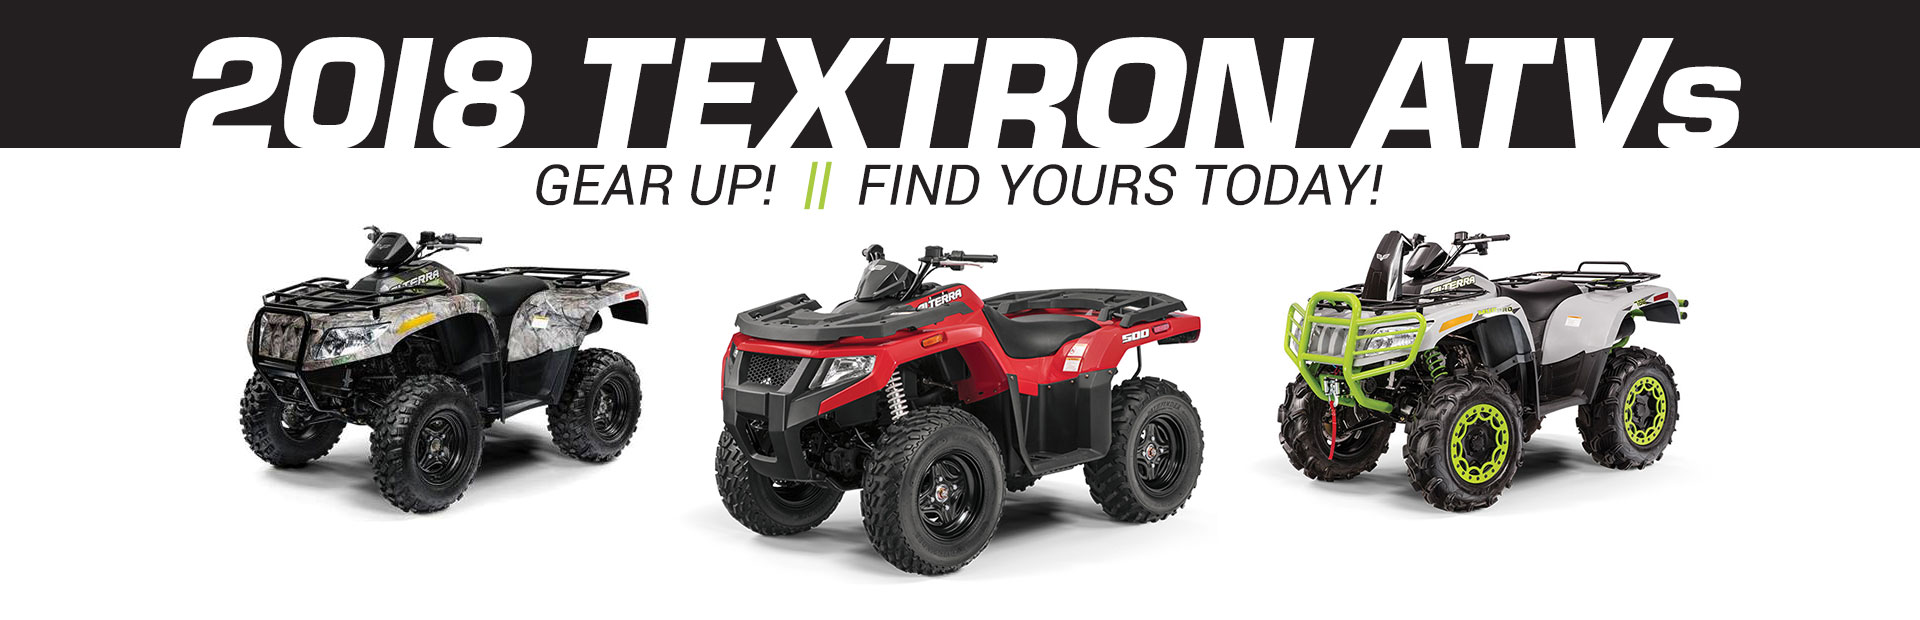 2018 Textron / Arctic CatATVs!5.99% financing for 60 months + rebates up to $3,500!Huge savings!